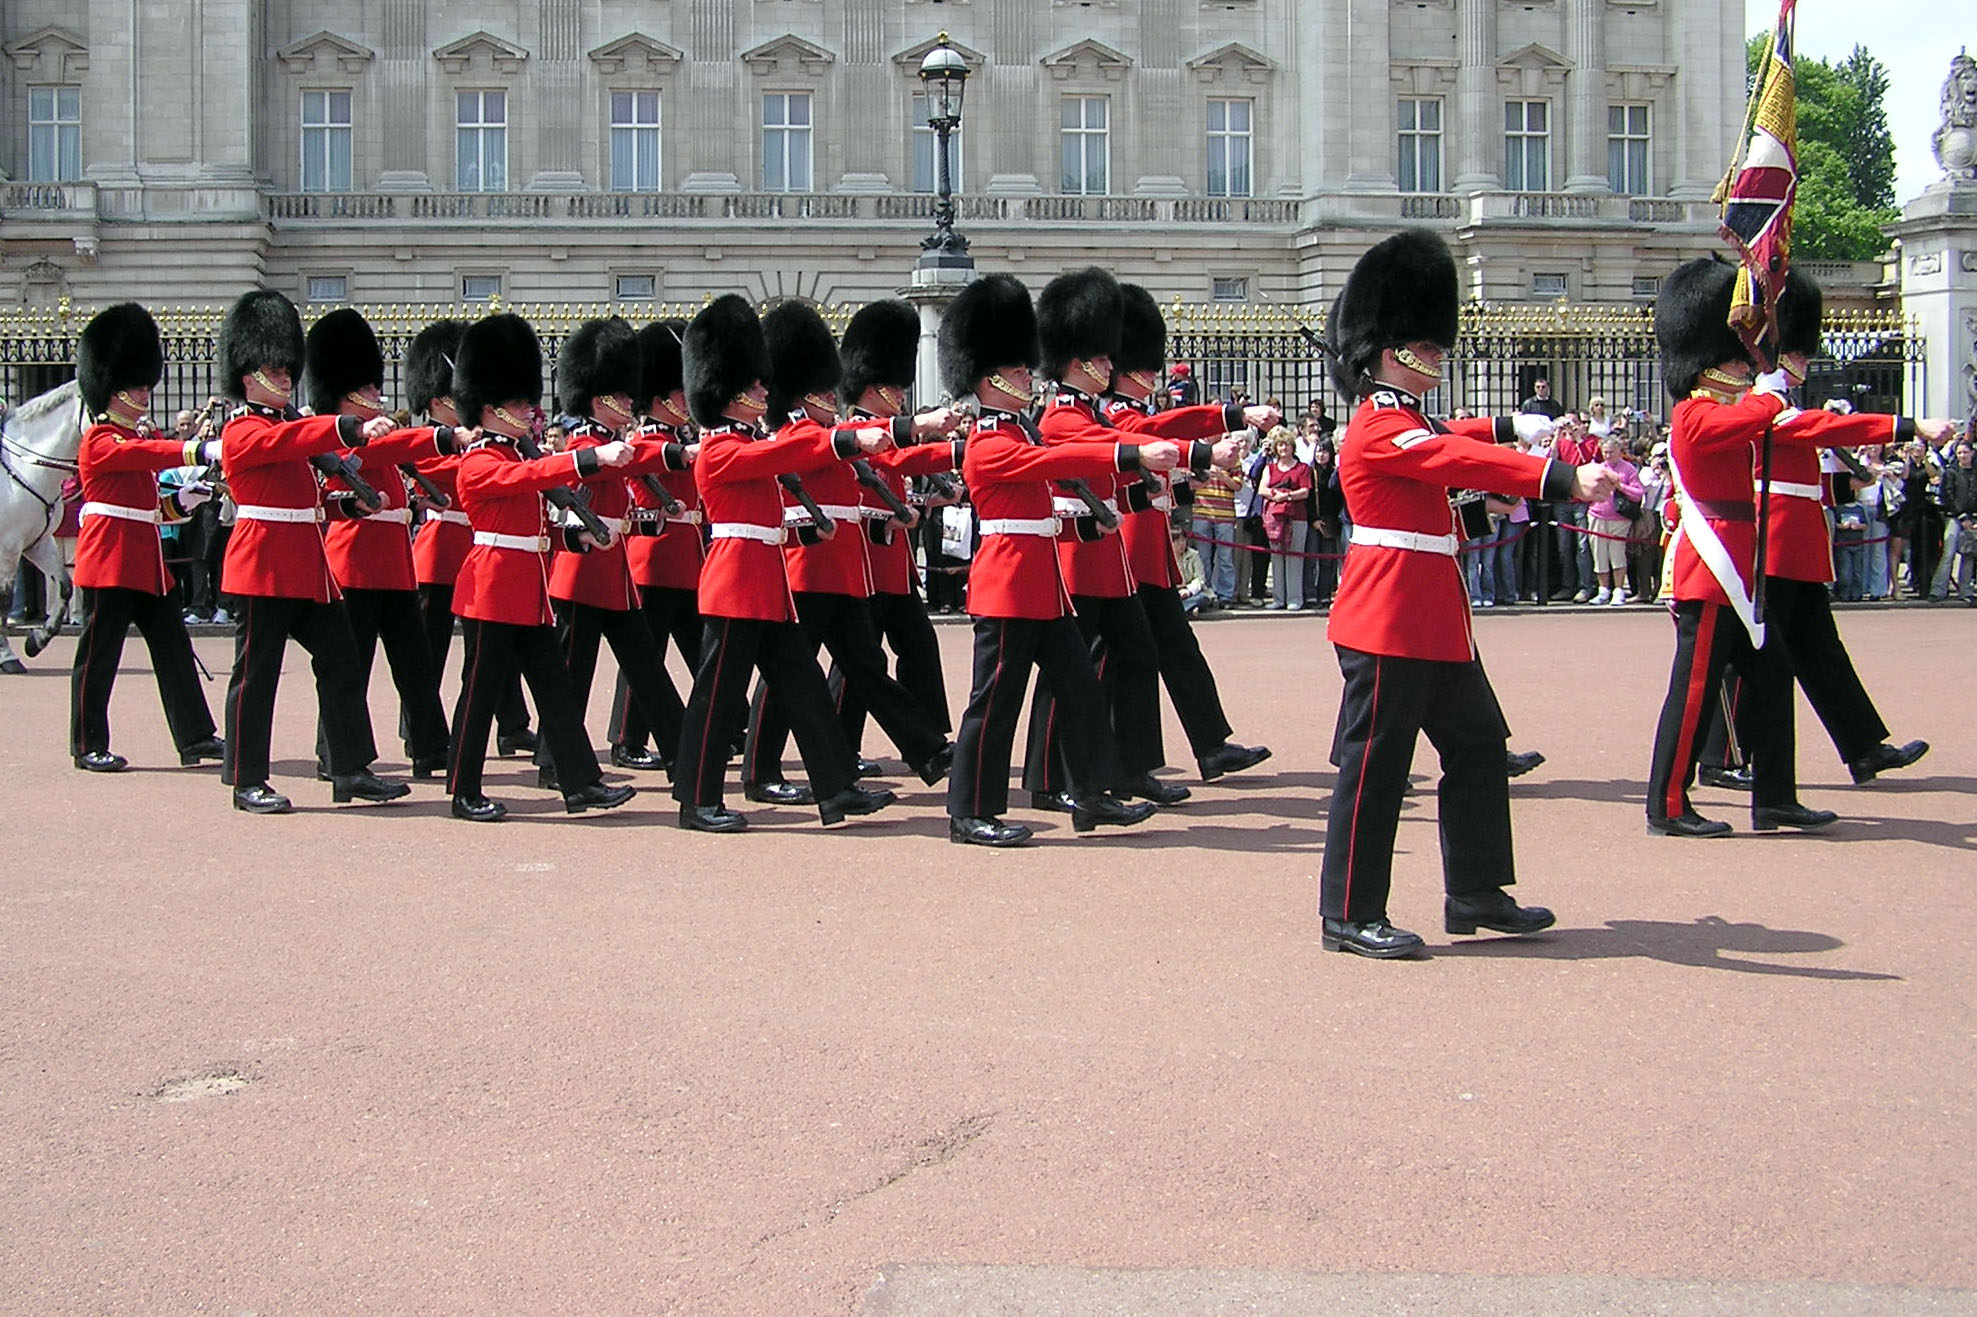 Queen's Guard, Buckingham Palace